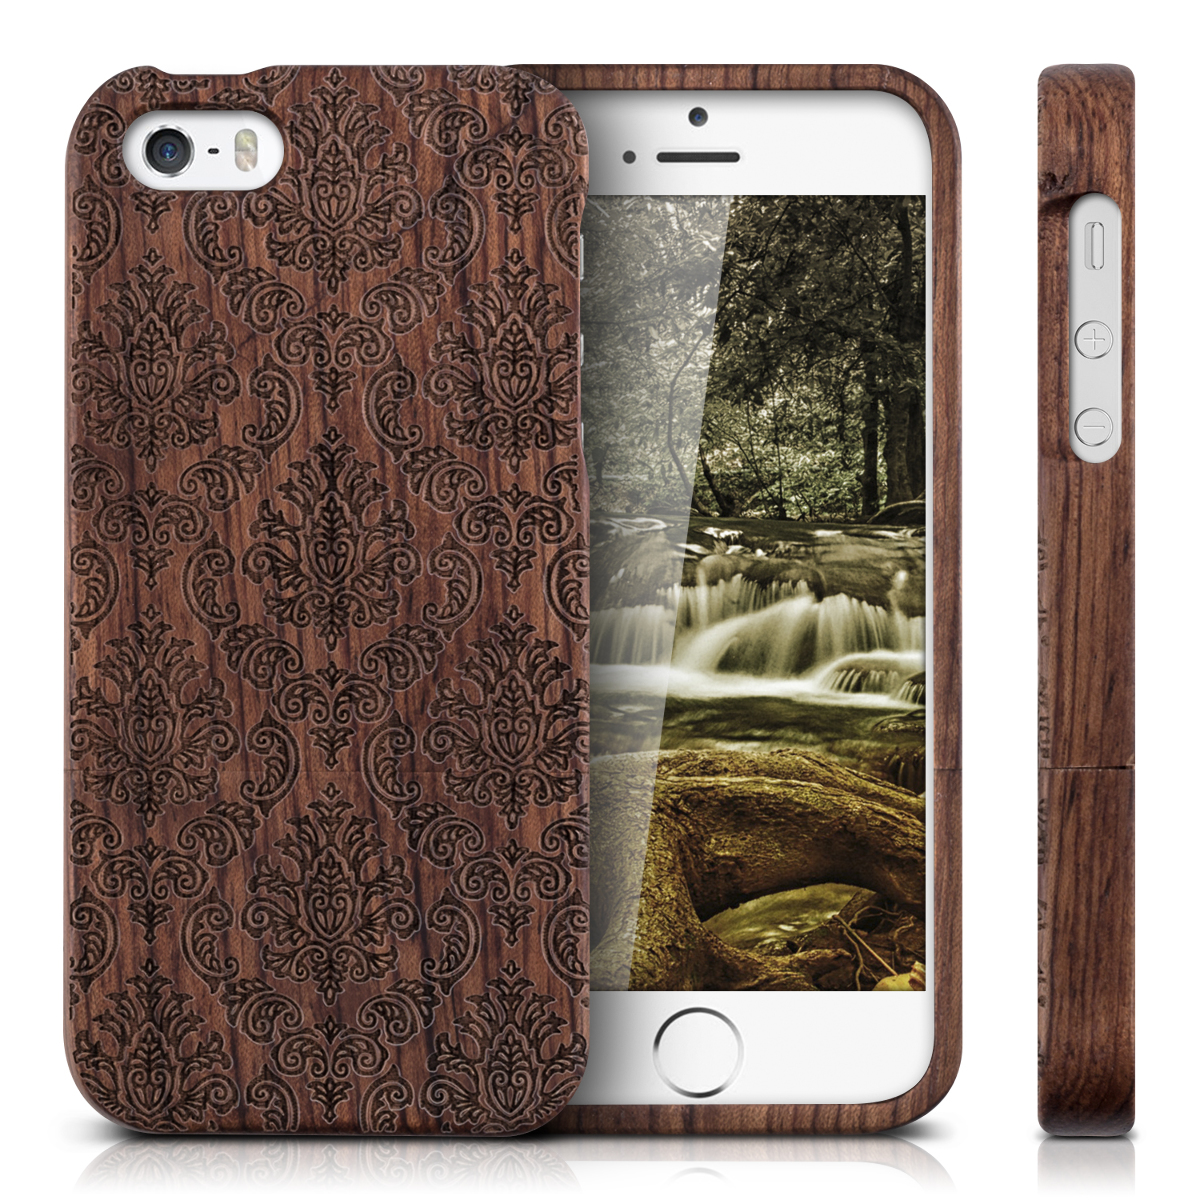 holz hard case f r apple iphone se 5 5s cover schutz h lle. Black Bedroom Furniture Sets. Home Design Ideas